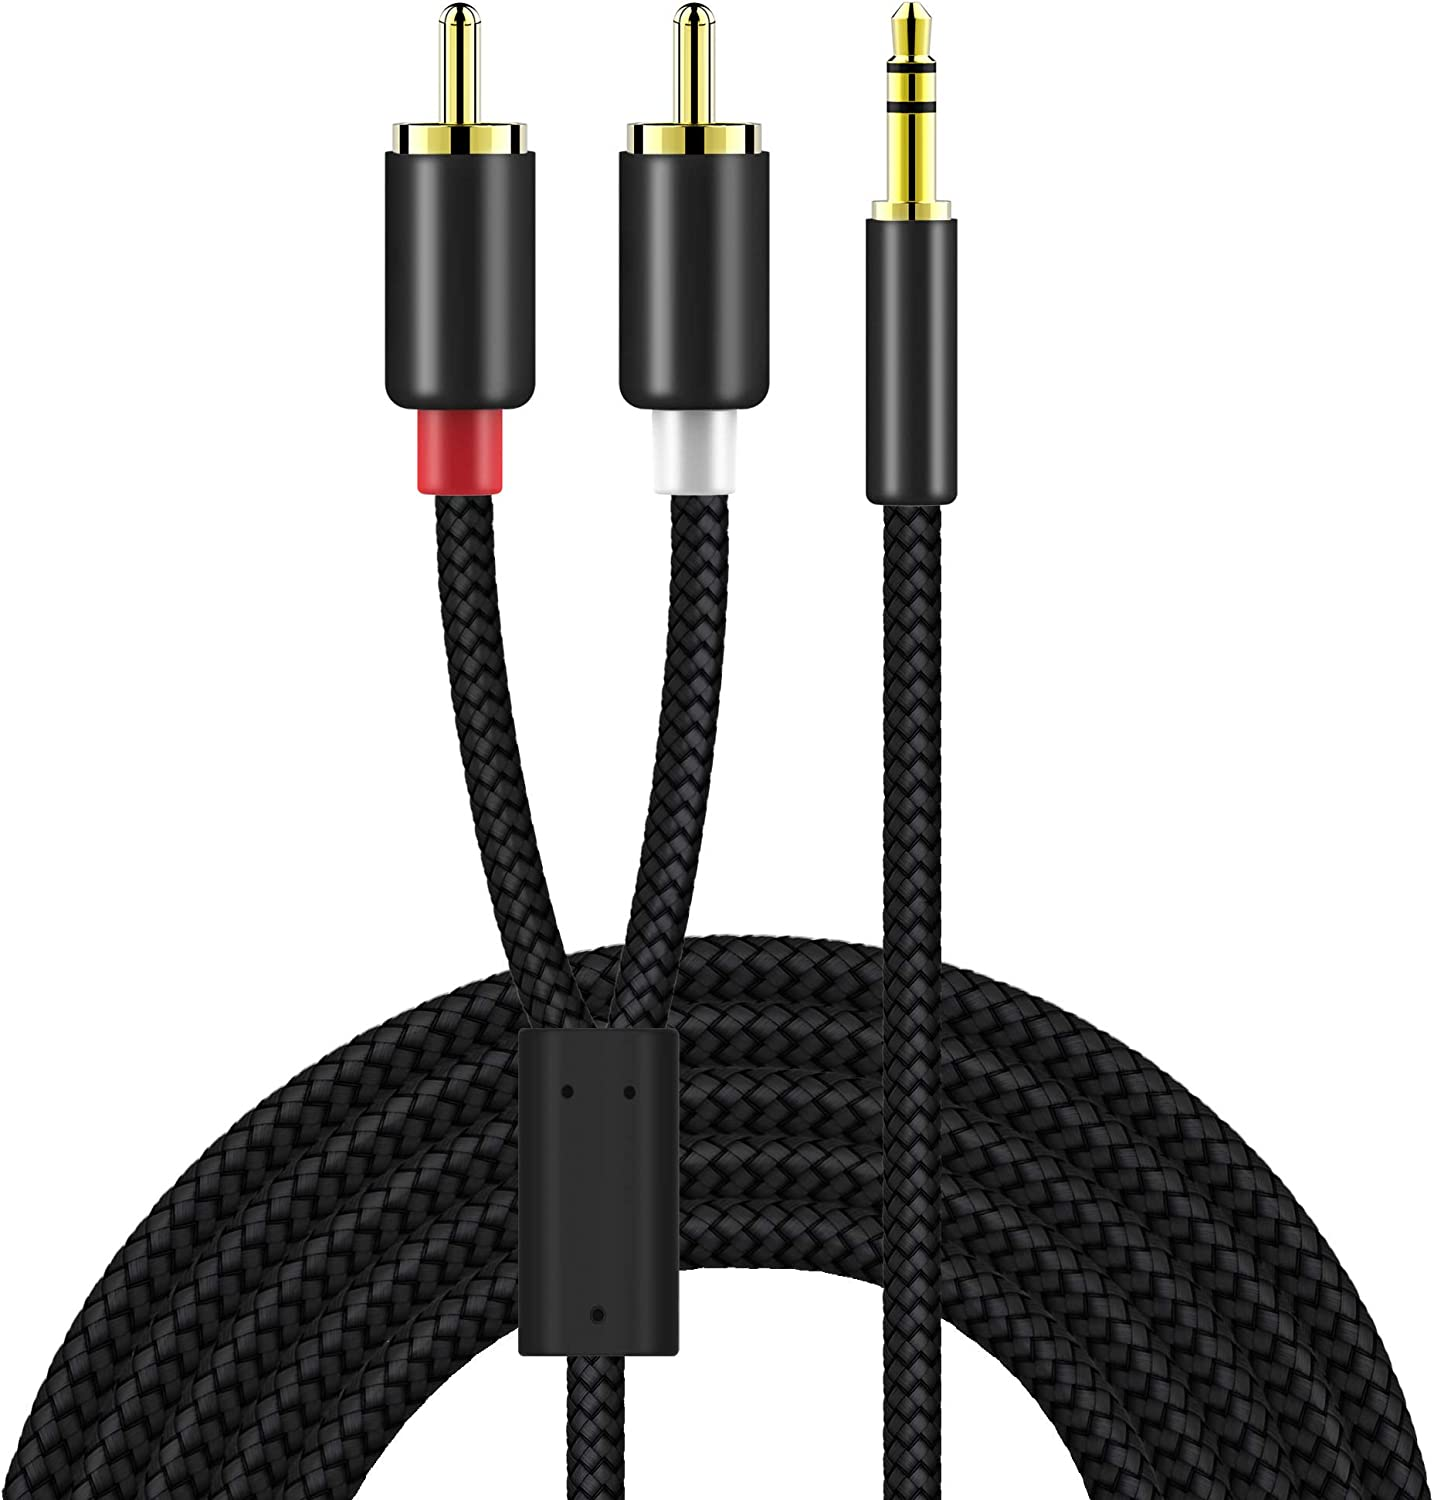 RCA Cable 6FT, UMECORE 3.5mm Plug Auxiliary Aux to 3 RCA AV Audio Video TV Cable Cord Wire for Home Theater, HDTV, MP3, HiFi Systems and More